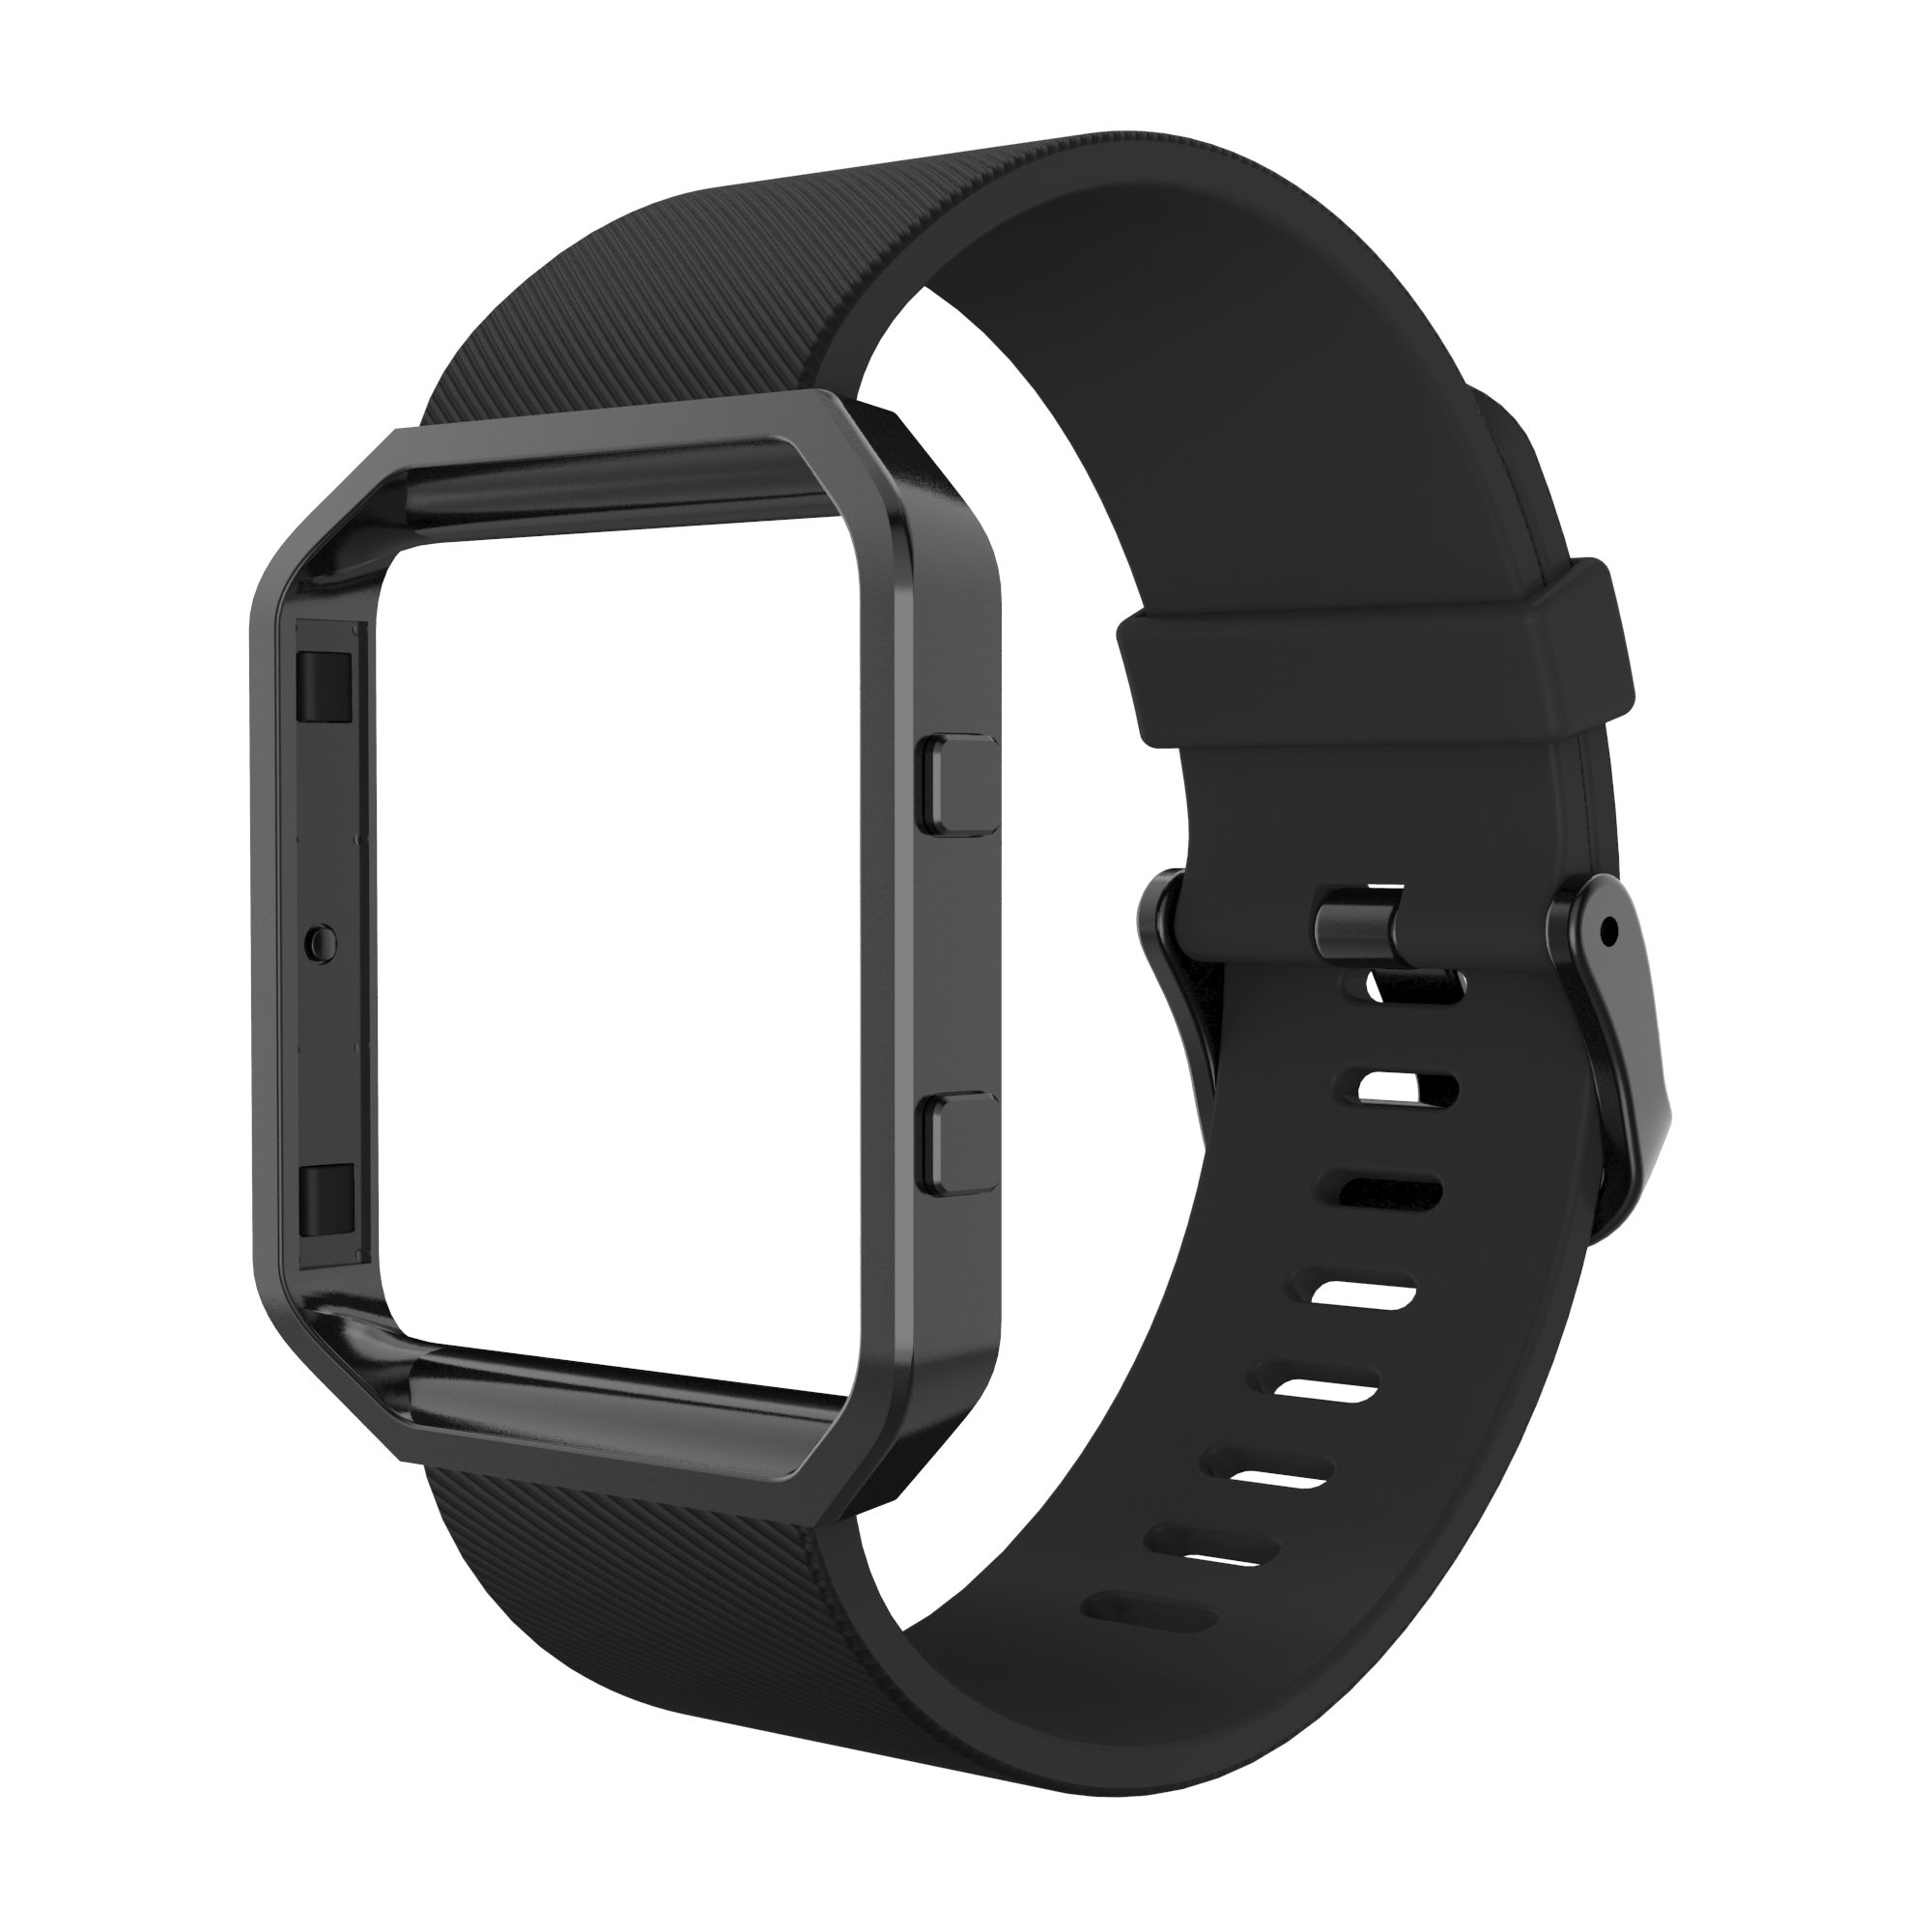 Simpeak for Fit bit Blaze Bands with Frame, Silicone Replacement Band Strap with Black Frame Case for Fit bit Blaze Smart Fitness Watch, Large, Black by Simpeak